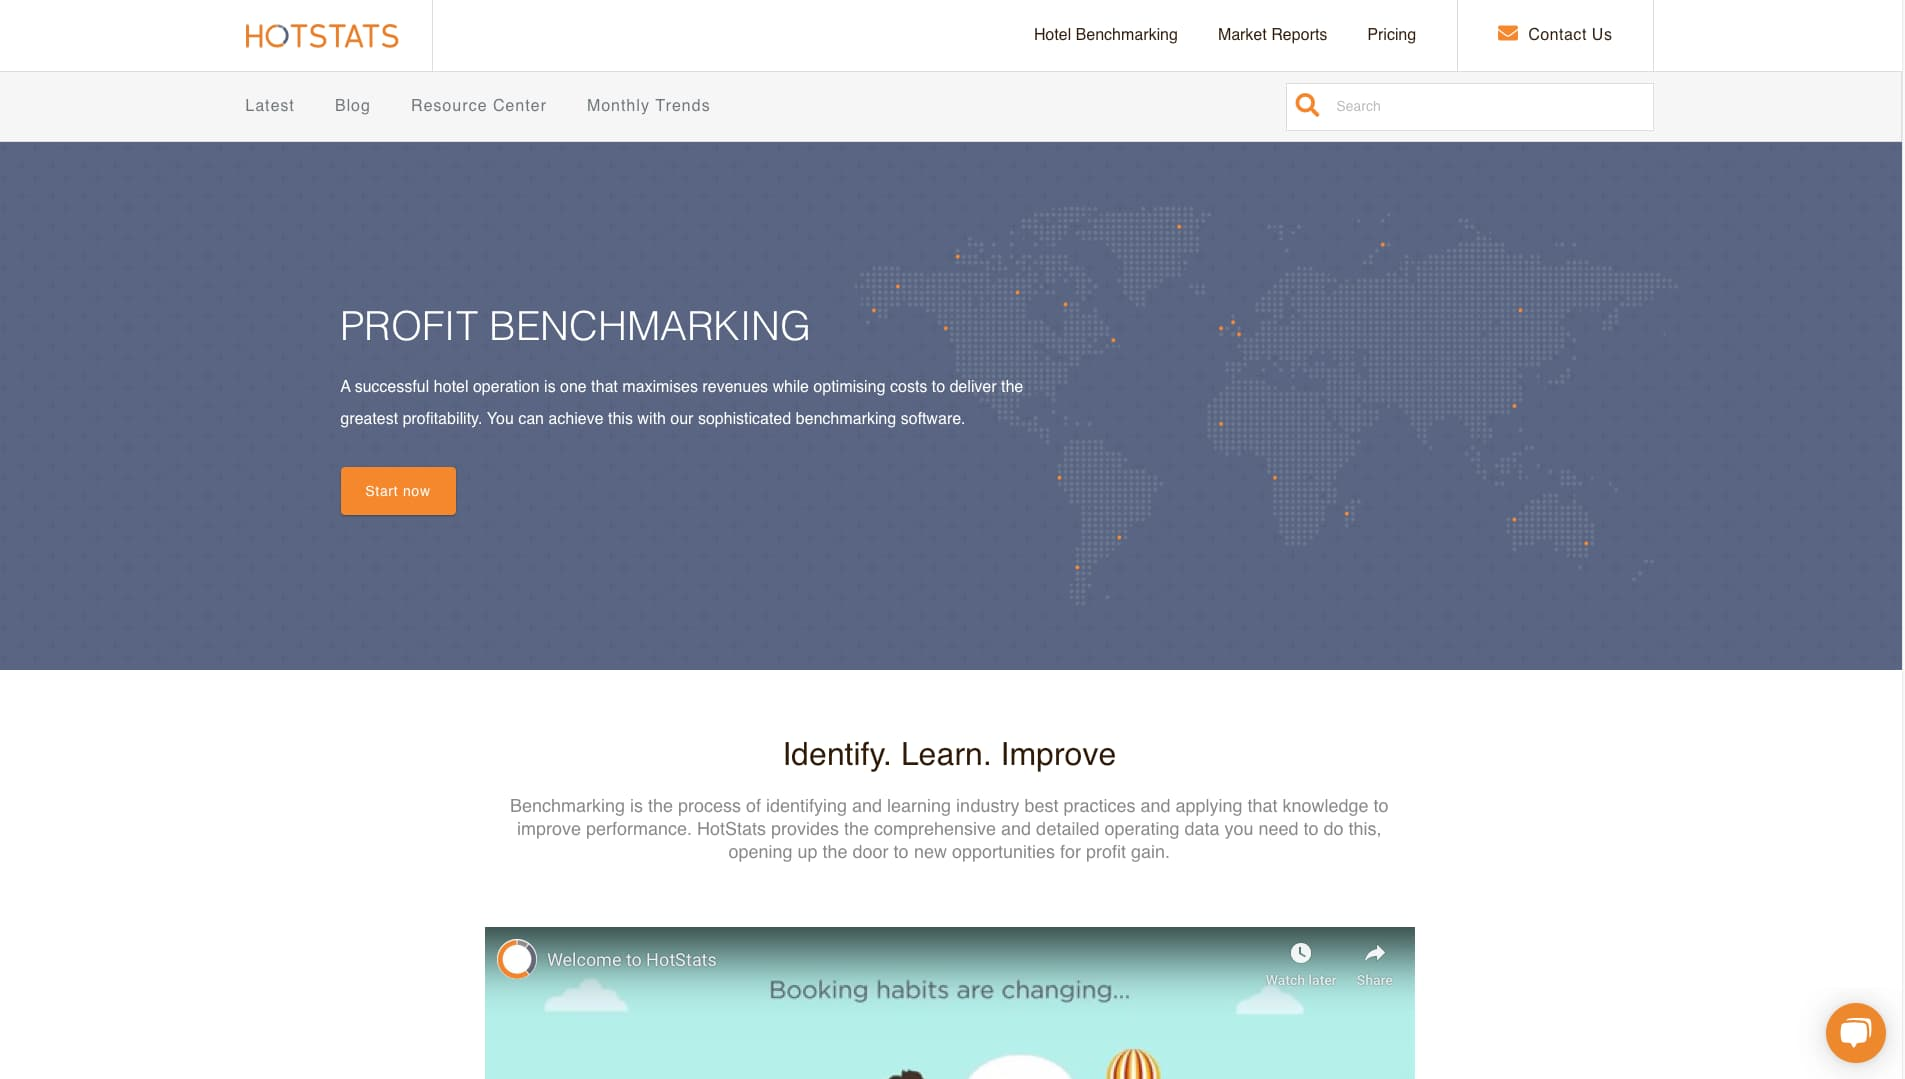 A screenshot of the Hotstats Profit Benchmarking Page